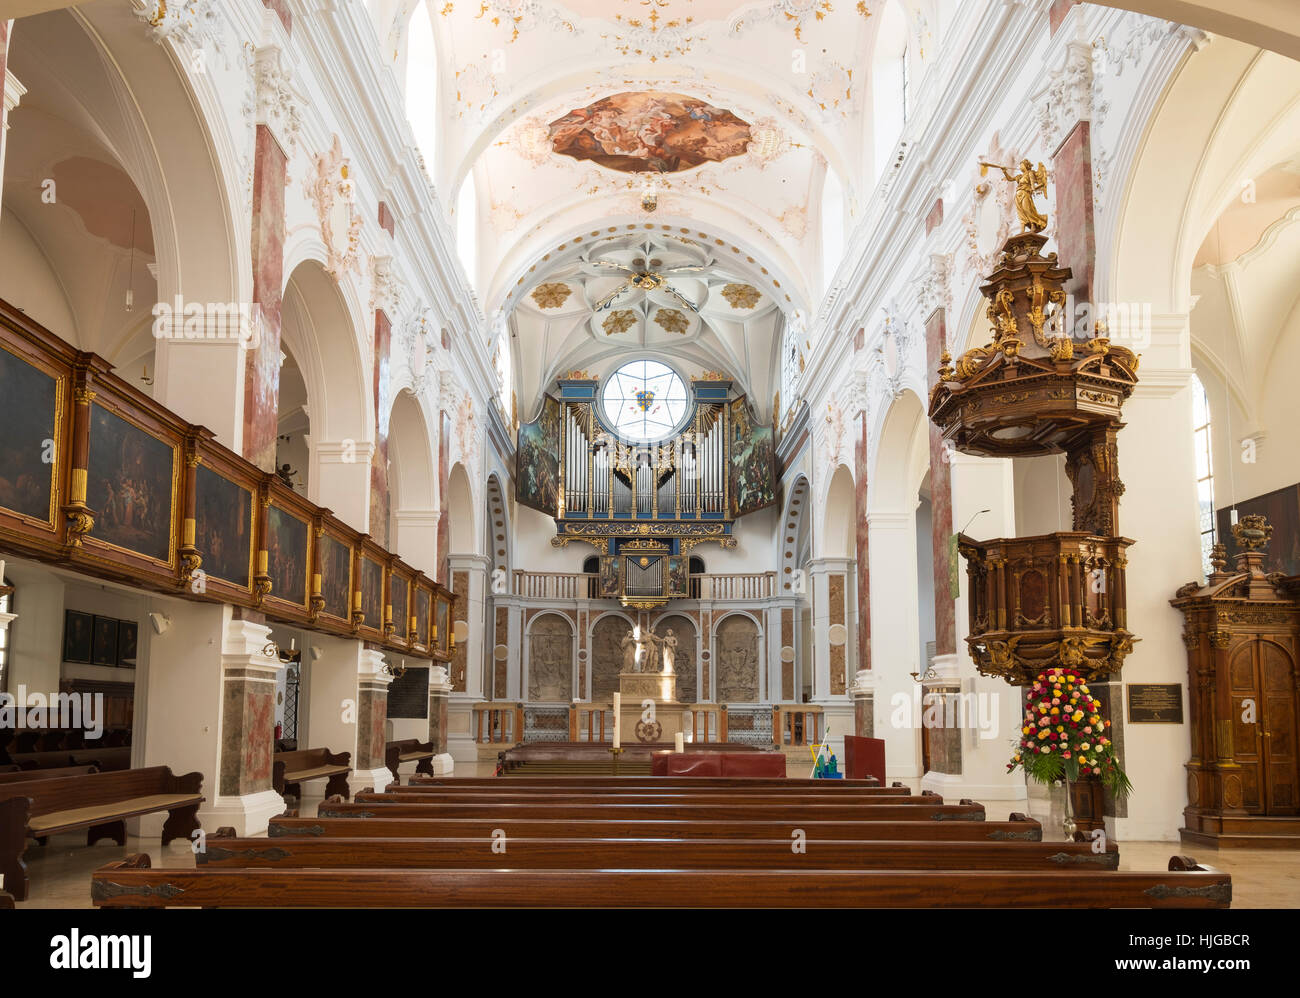 Interior view with Fuggerkapelle and organ, St. Anne's Church, Augsburg, Swabia, Bavaria, Germany - Stock Image